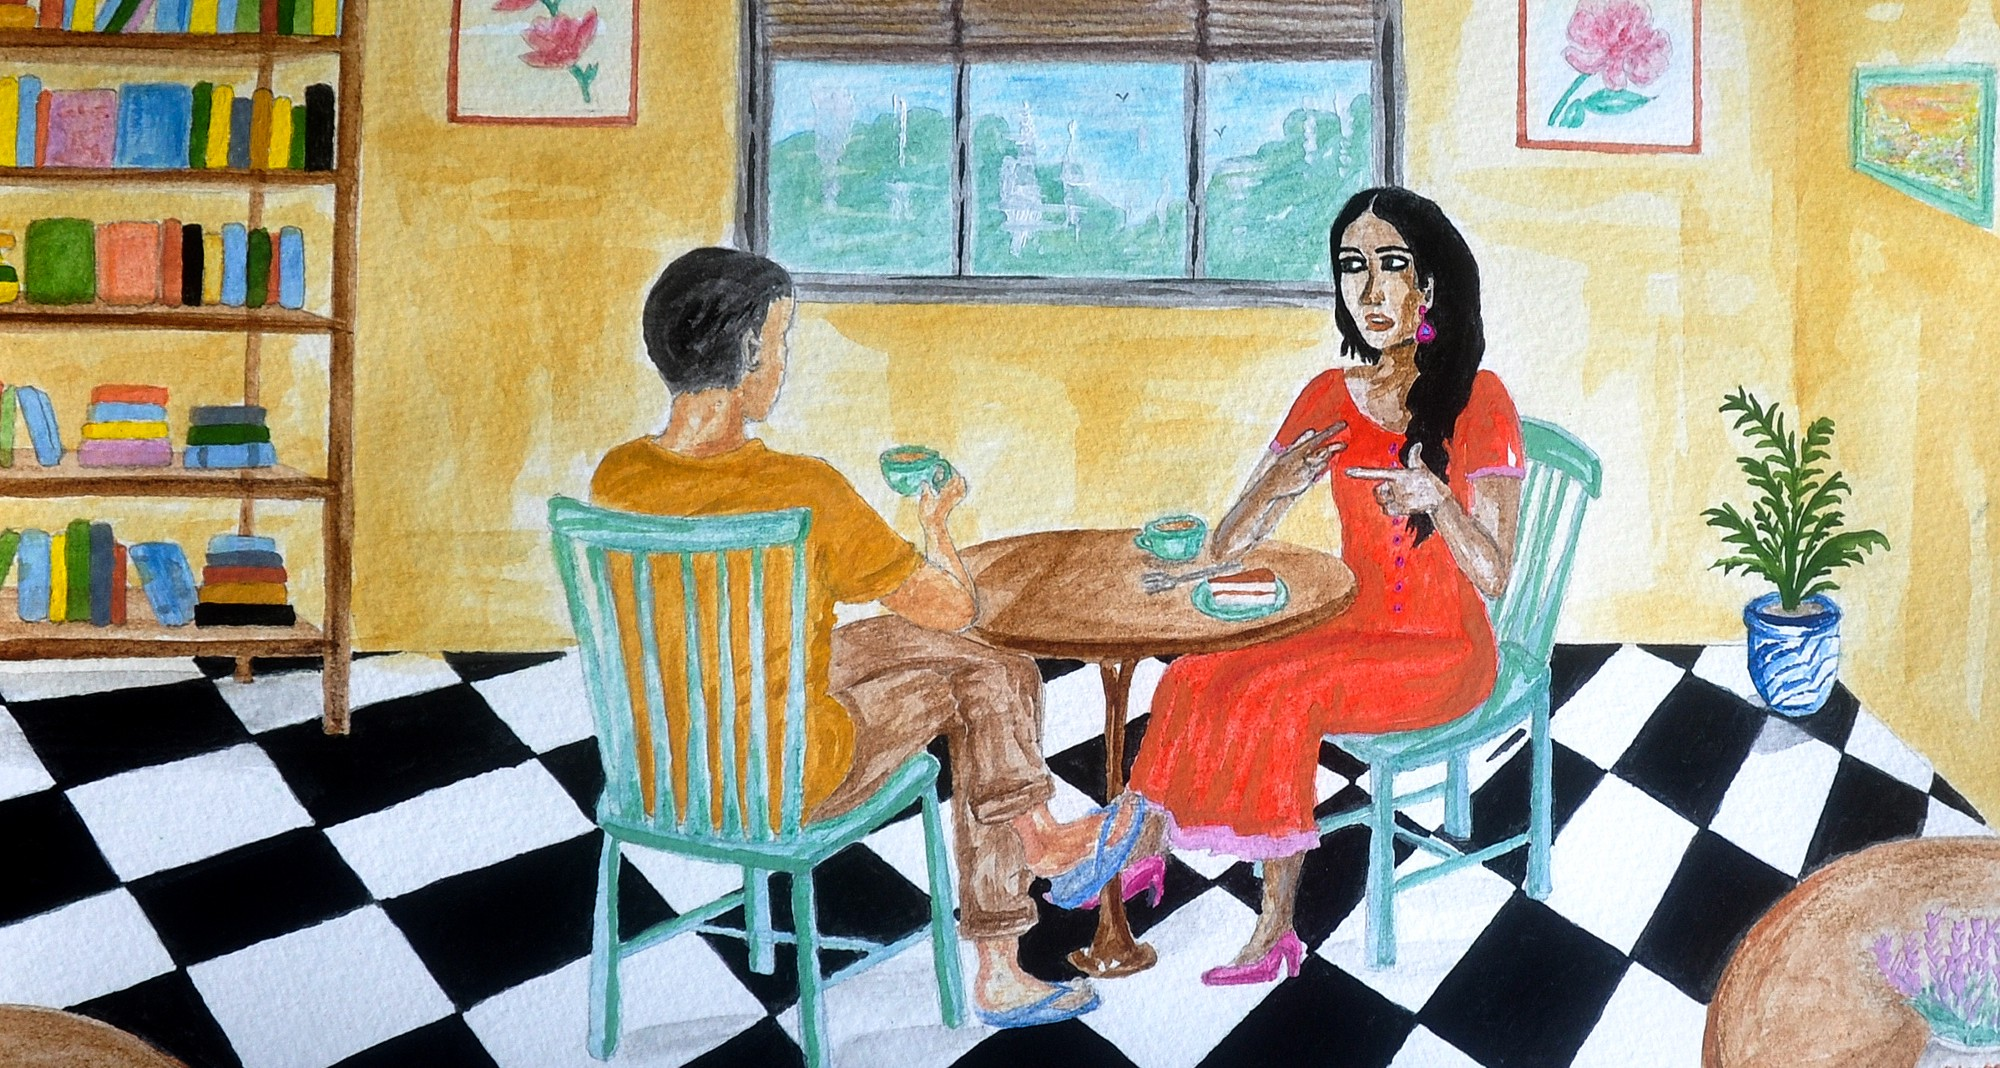 An illustration of two people seated across a table in a room and having a conversation. One of them is signing to the other.